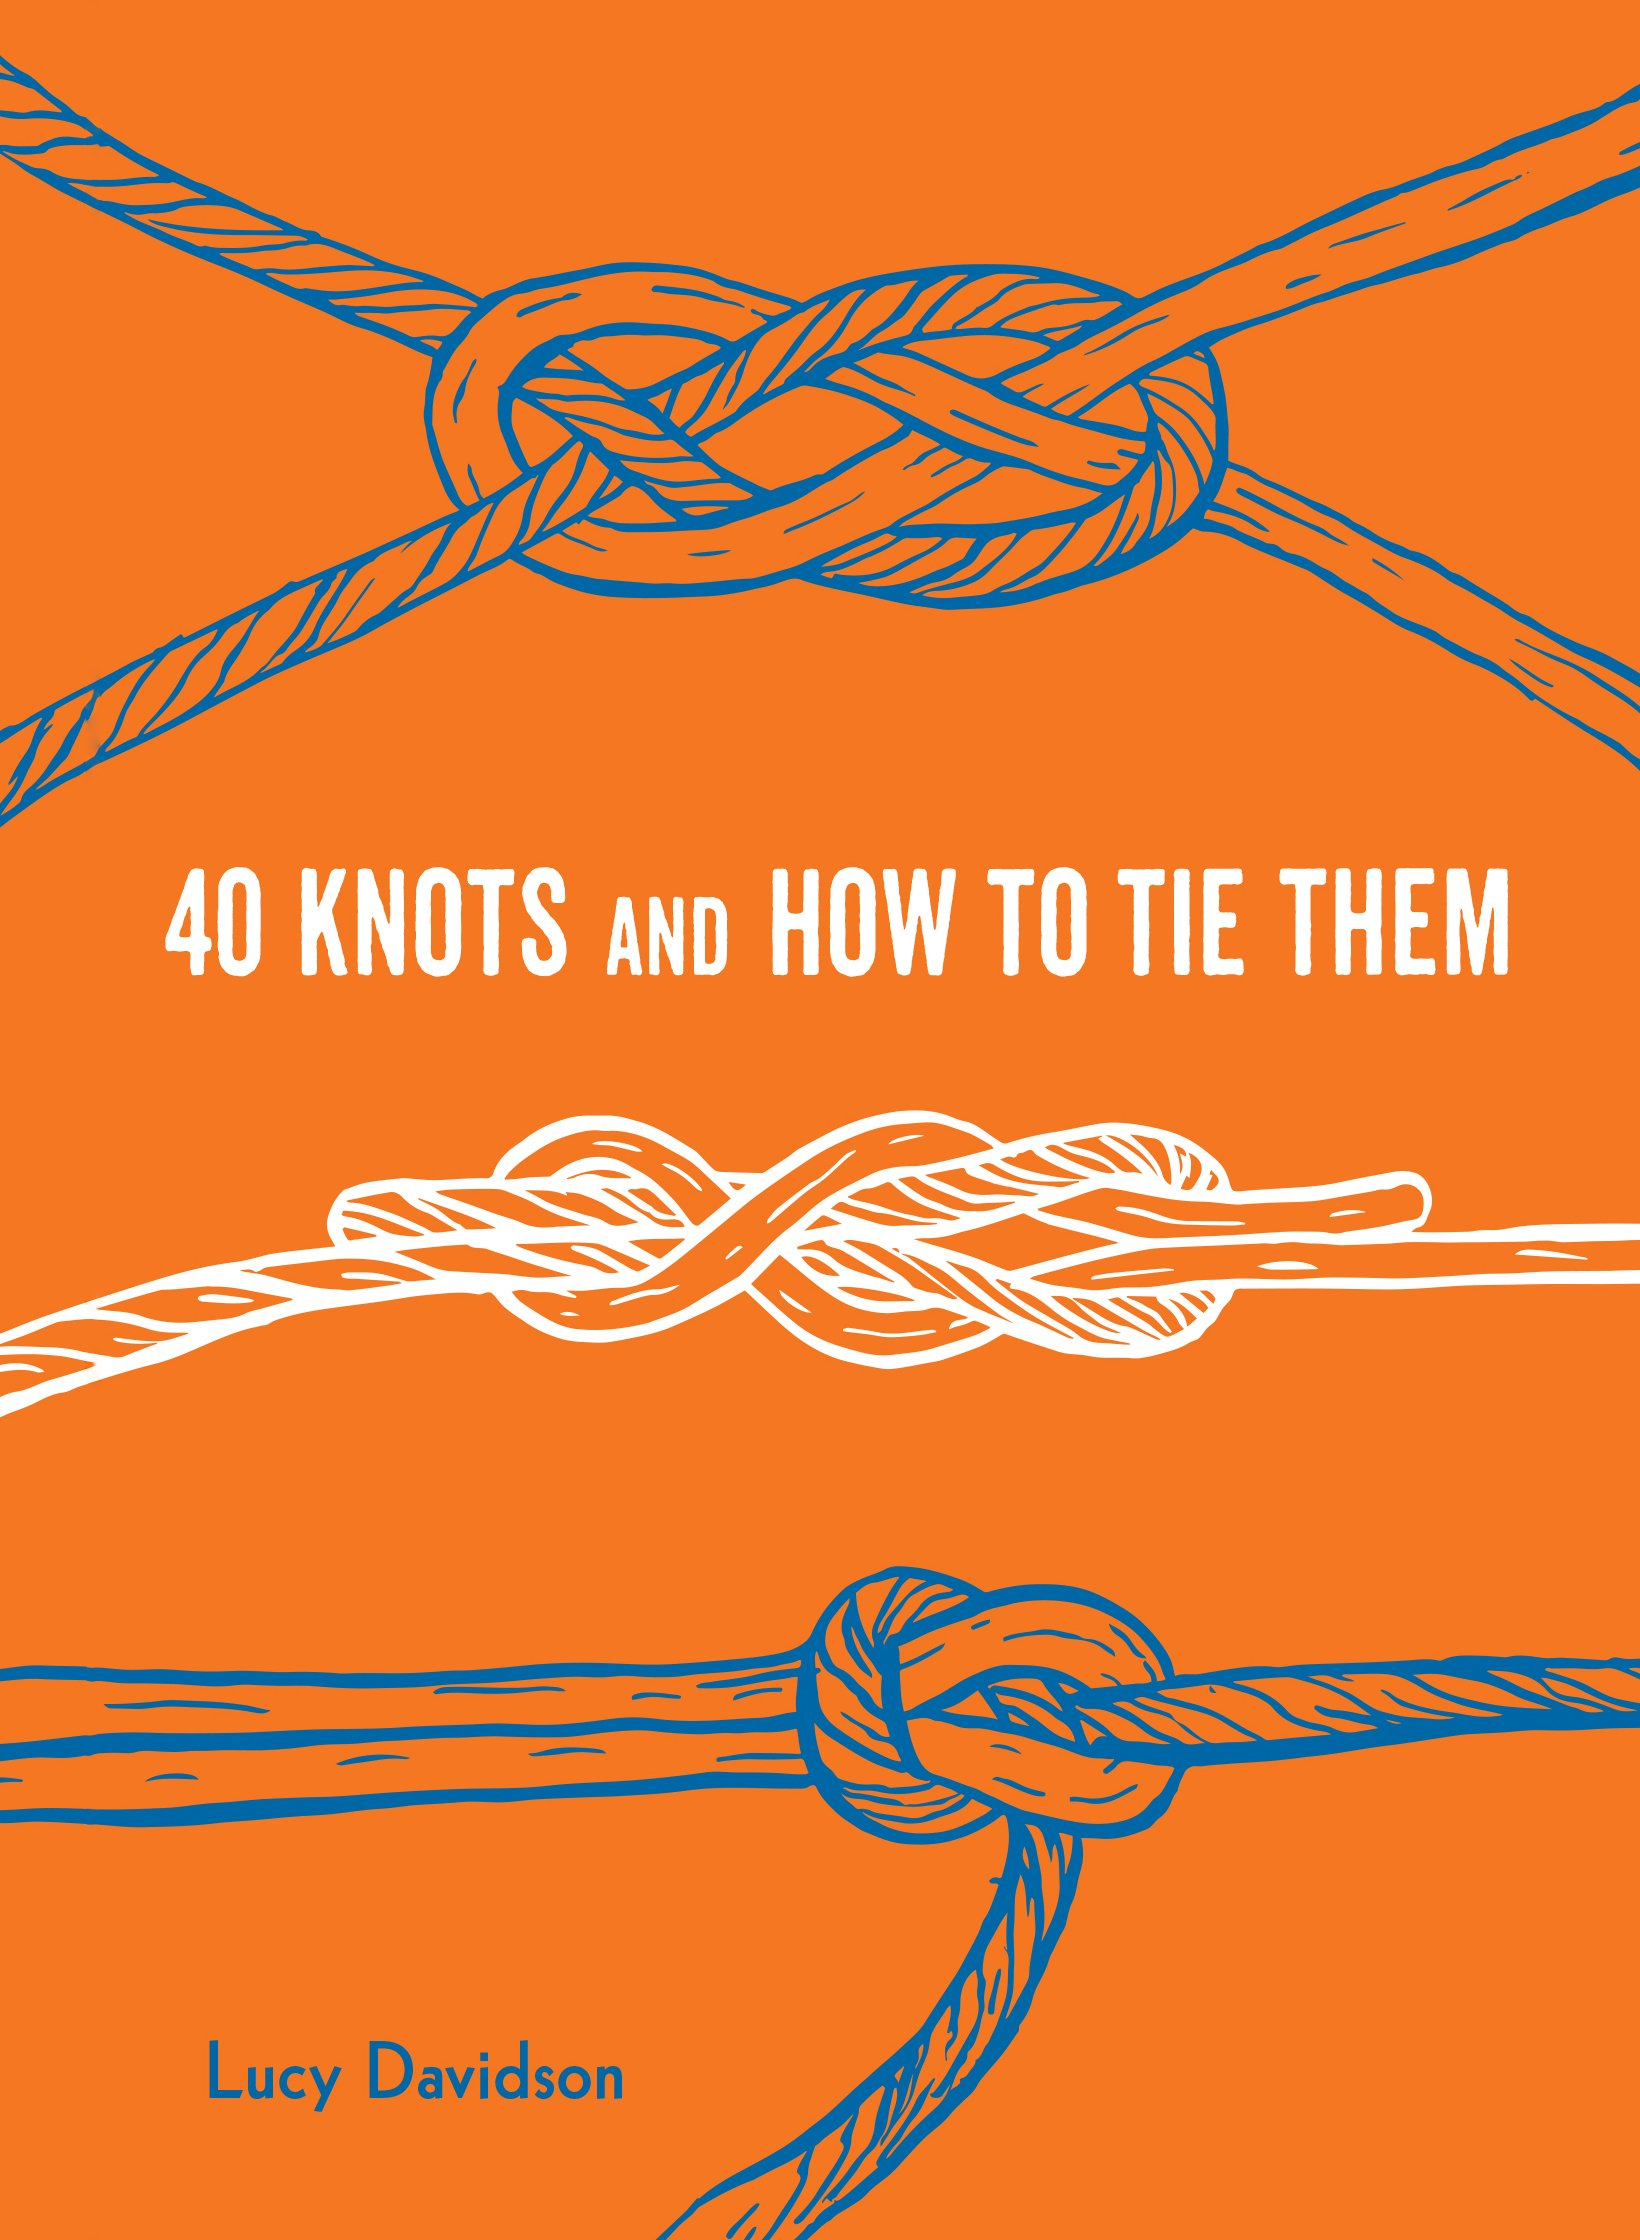 40 Knots And How To Tie Them Explore More Davidson Lucy 9781616897185 Amazon Com Books